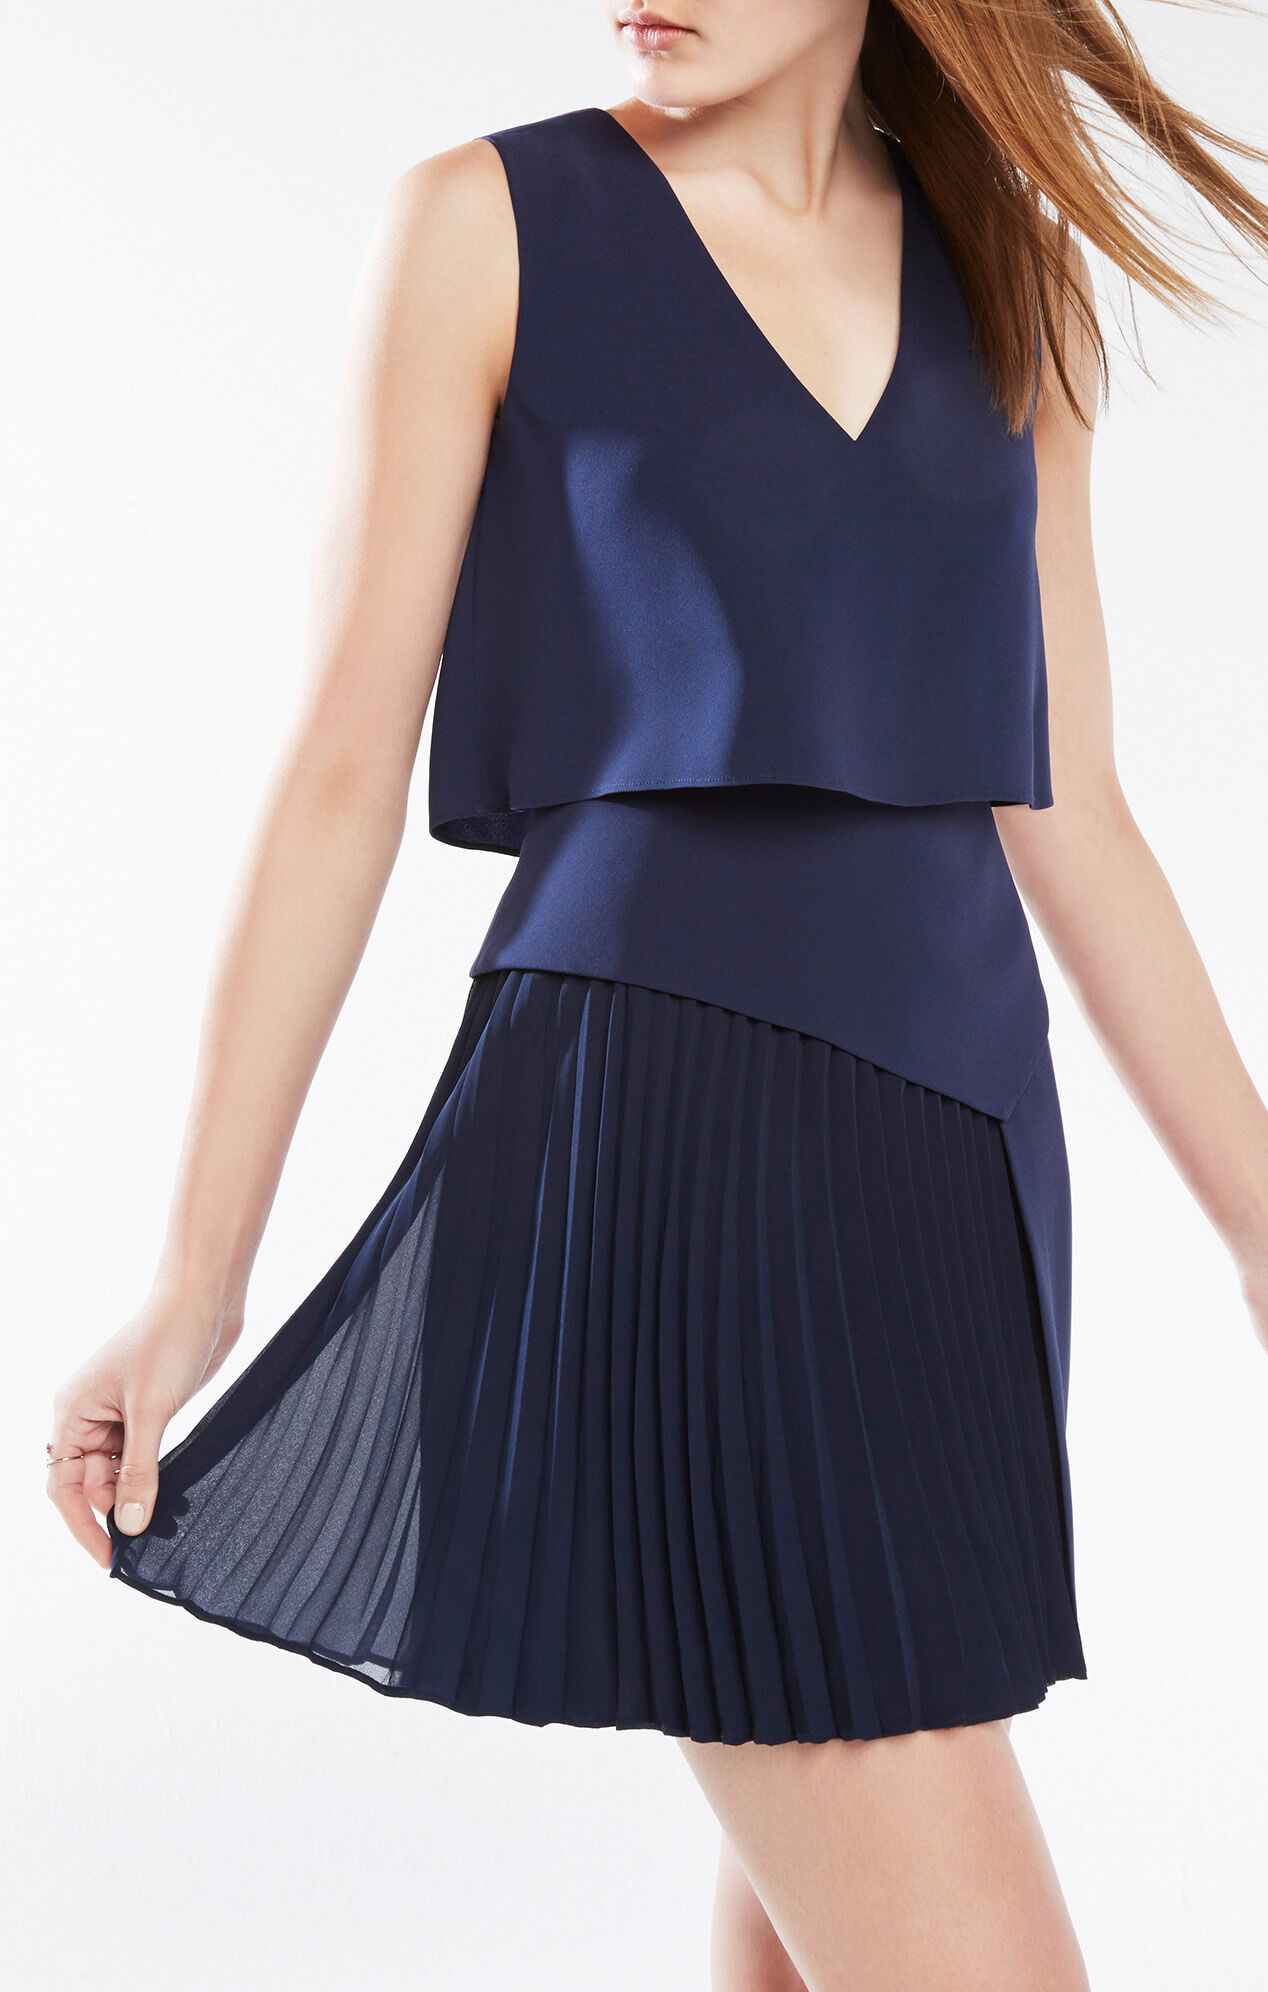 FREE Shipping & FREE Returns on Pleated Dresses at Bloomingdale's. Shop now! Pick Up in Store Available.